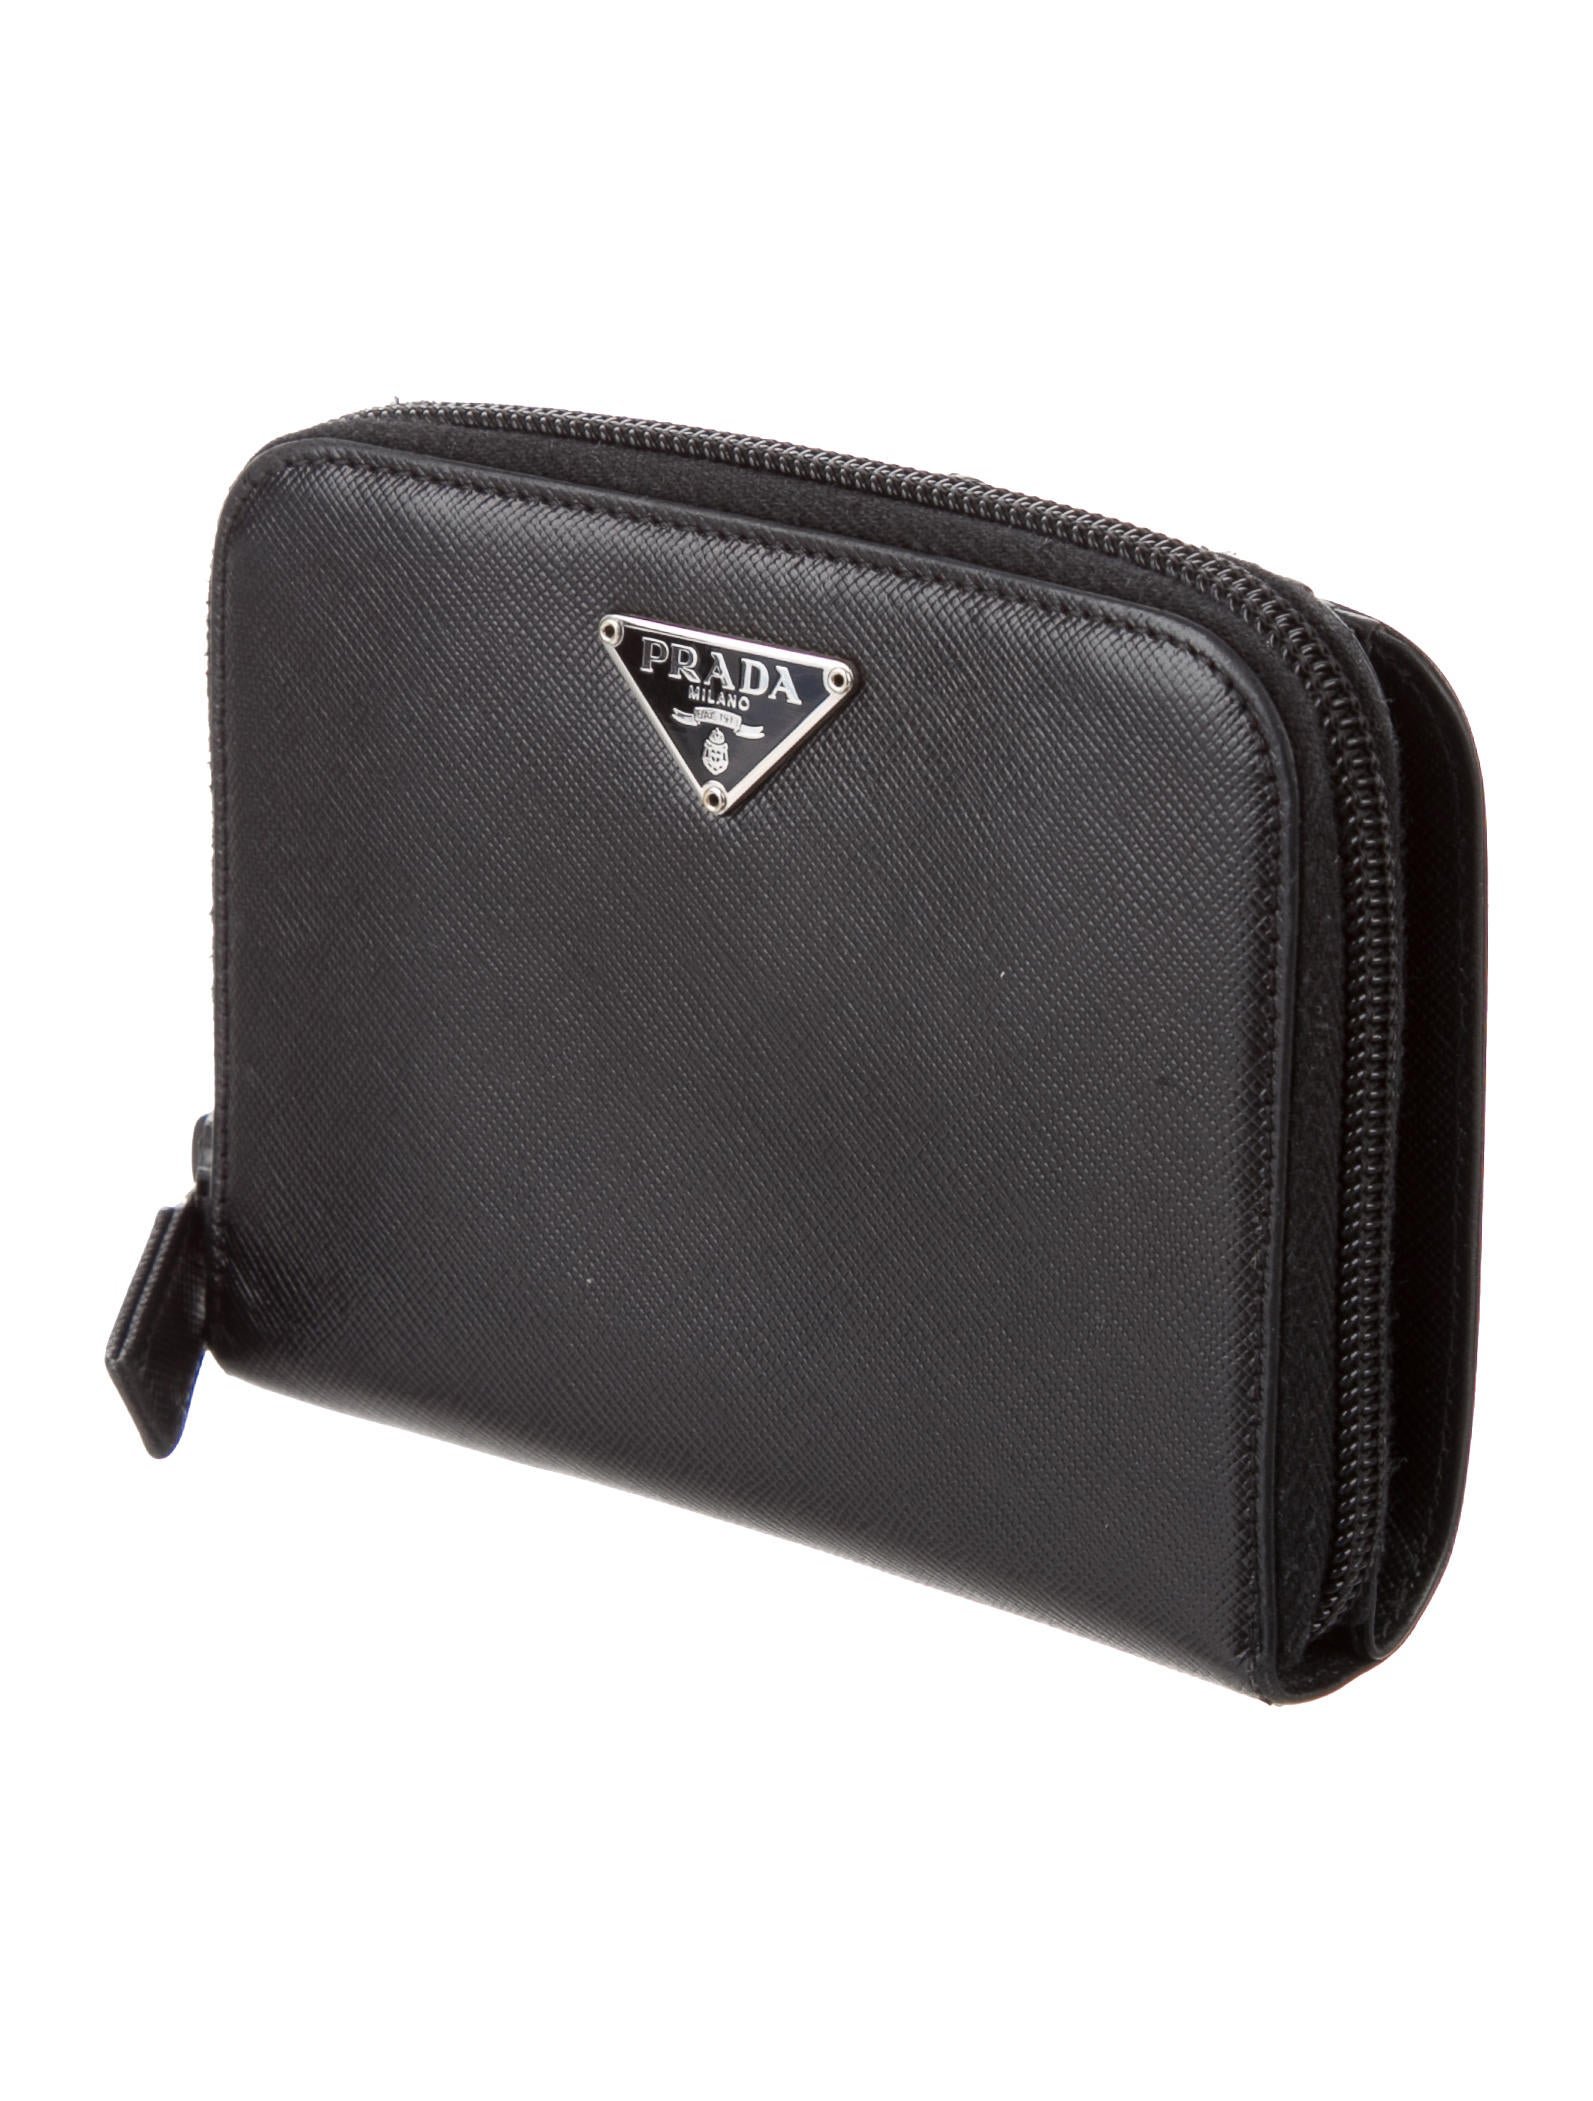 0215ab04bd33 Prada Small Compact Wallets | Stanford Center for Opportunity Policy ...